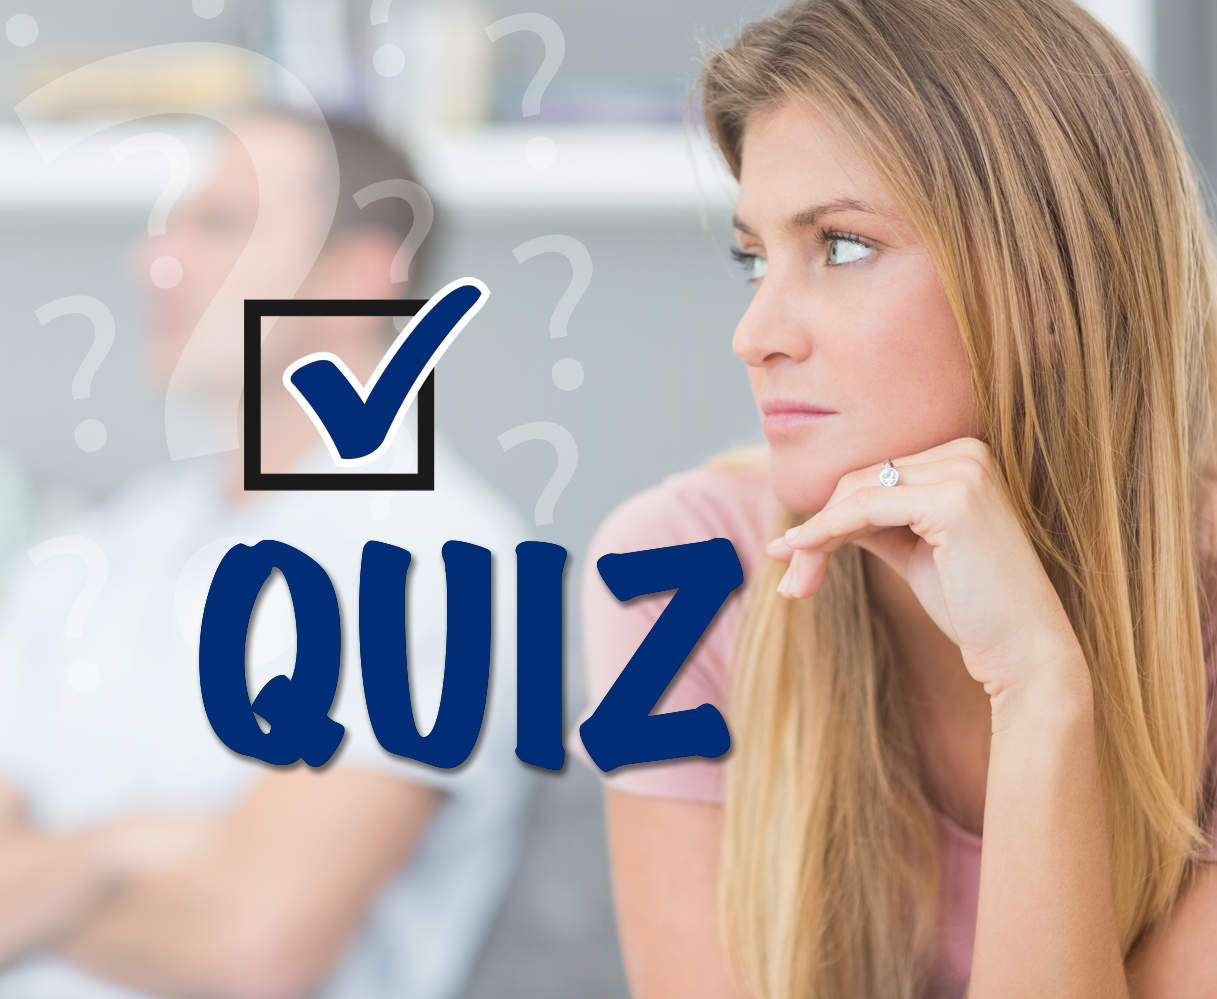 QUIZ: Can My Marriage Be Saved? | LoveLearnings com